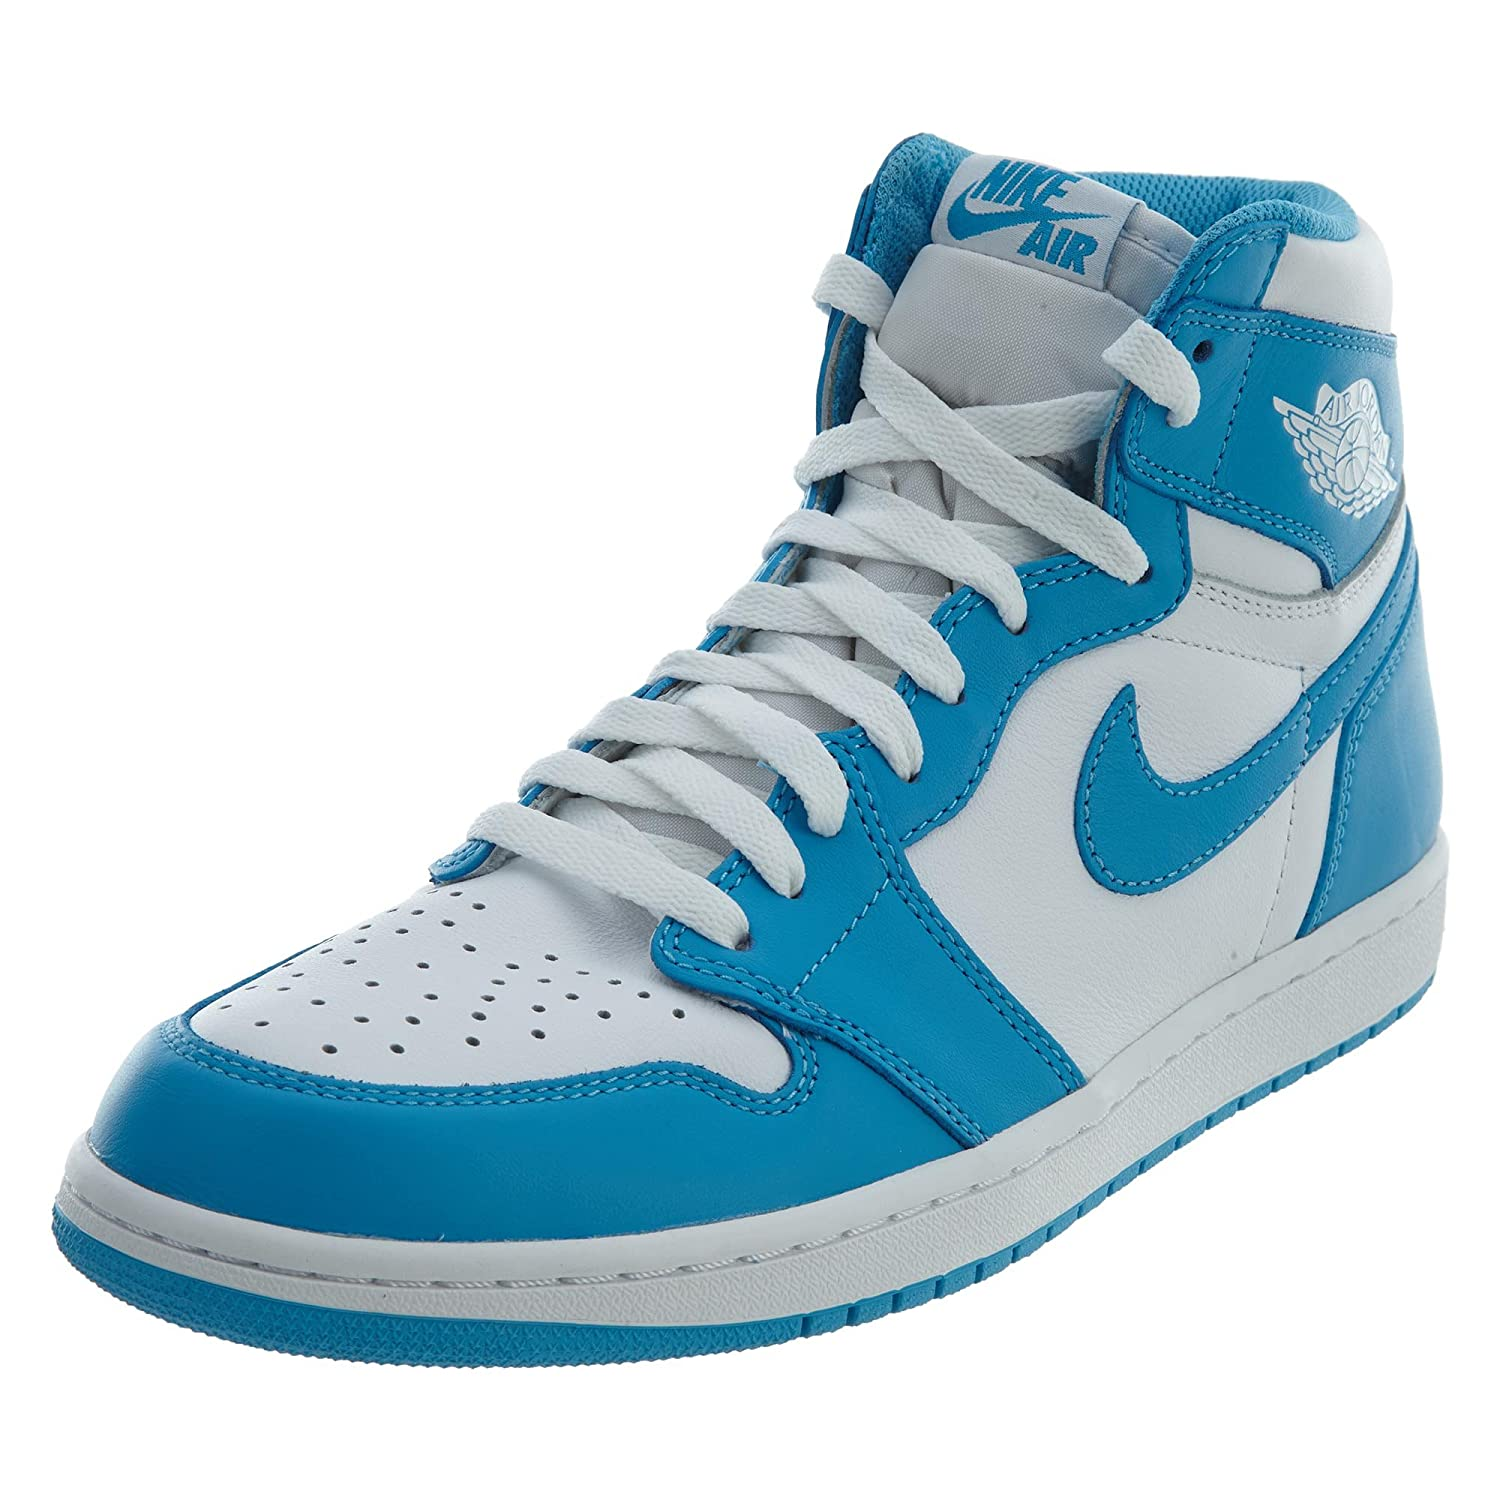 online retailer cbe65 3ee51 NIKE NIKE Air Jordan Retro 1 High OG Sneakers UNC QS White Powder Blue  555088-117  Buy Online at Low Prices in India - Amazon.in